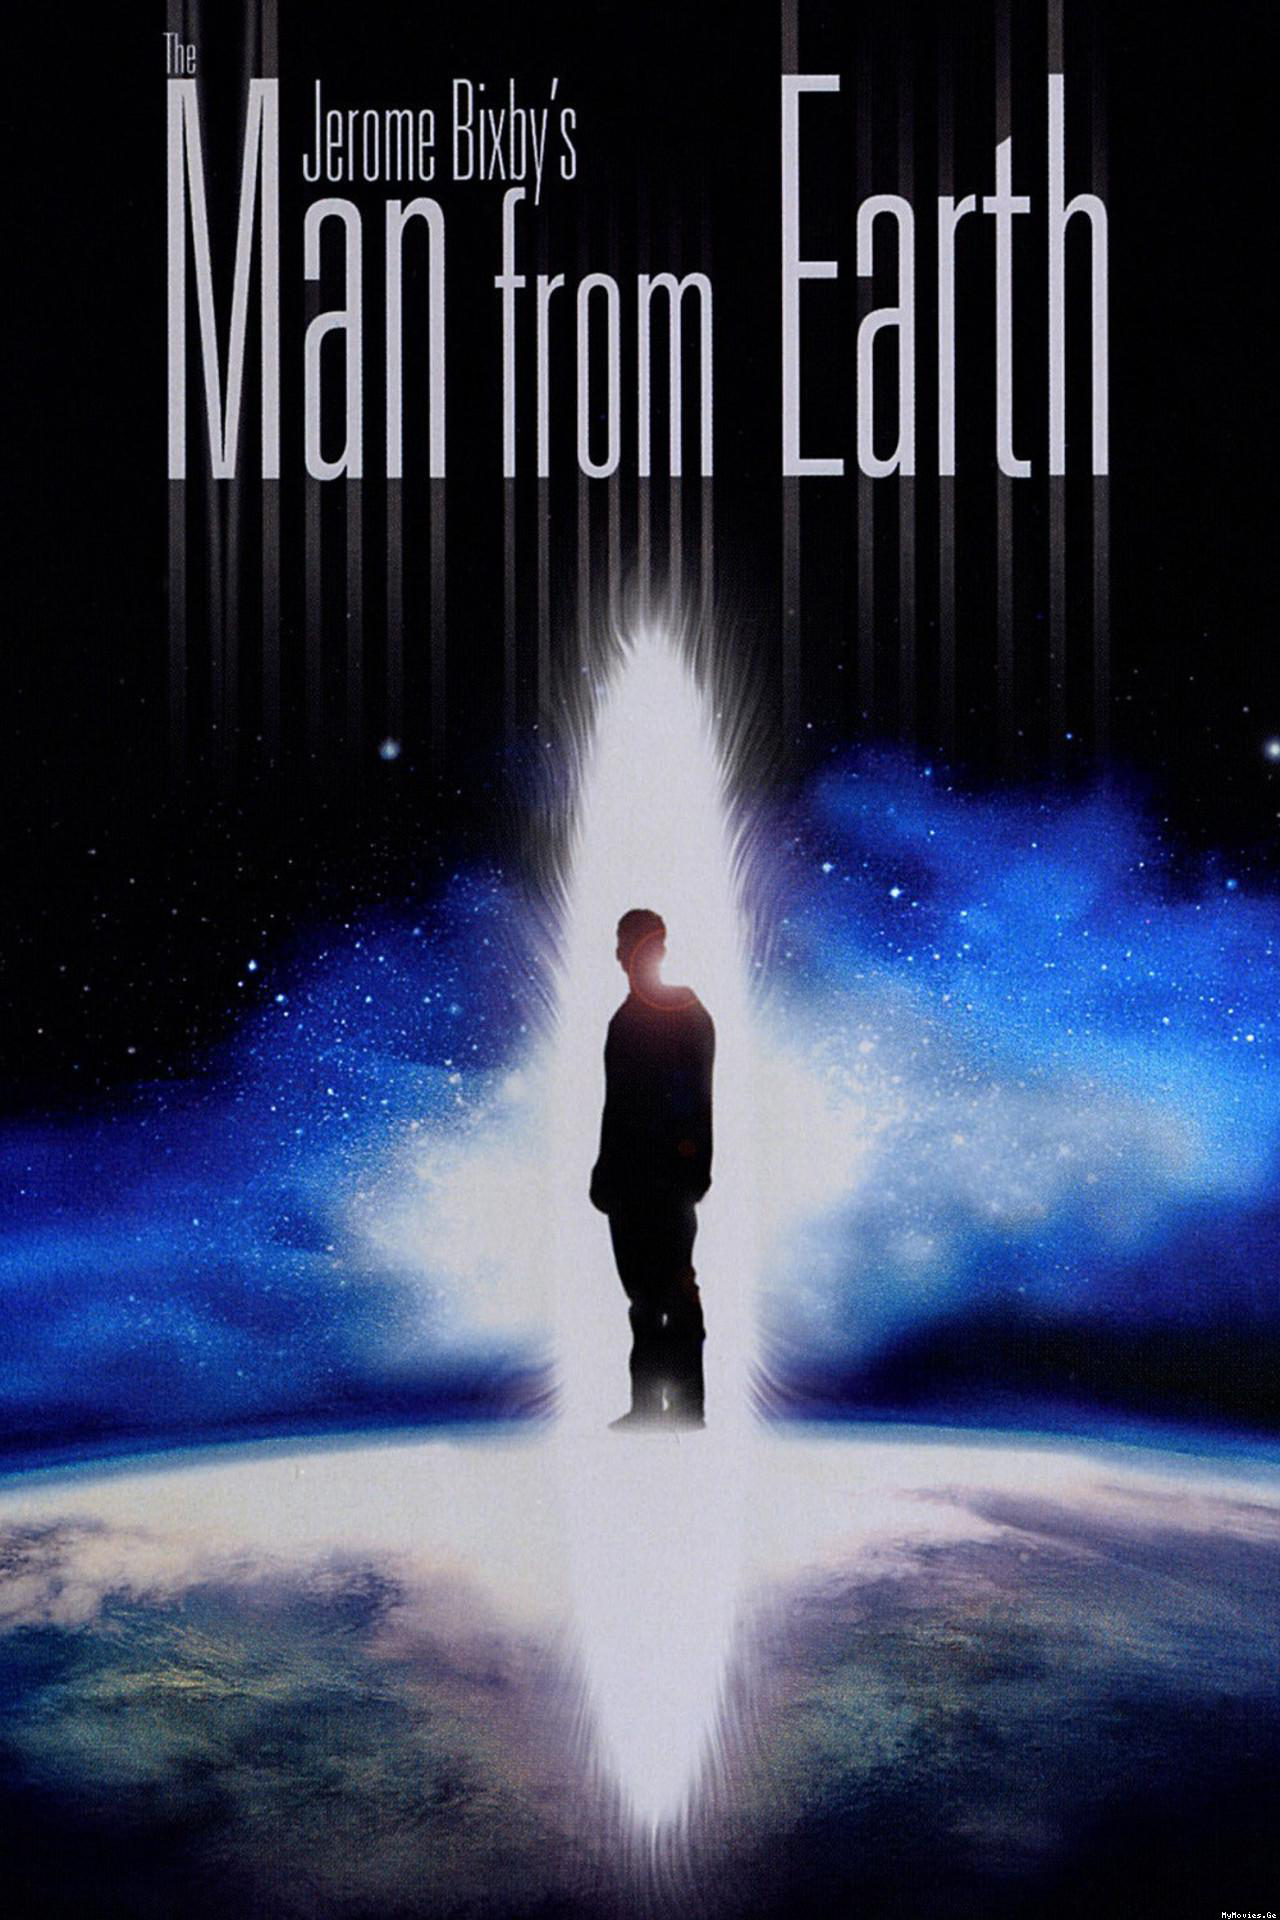 manfromearth